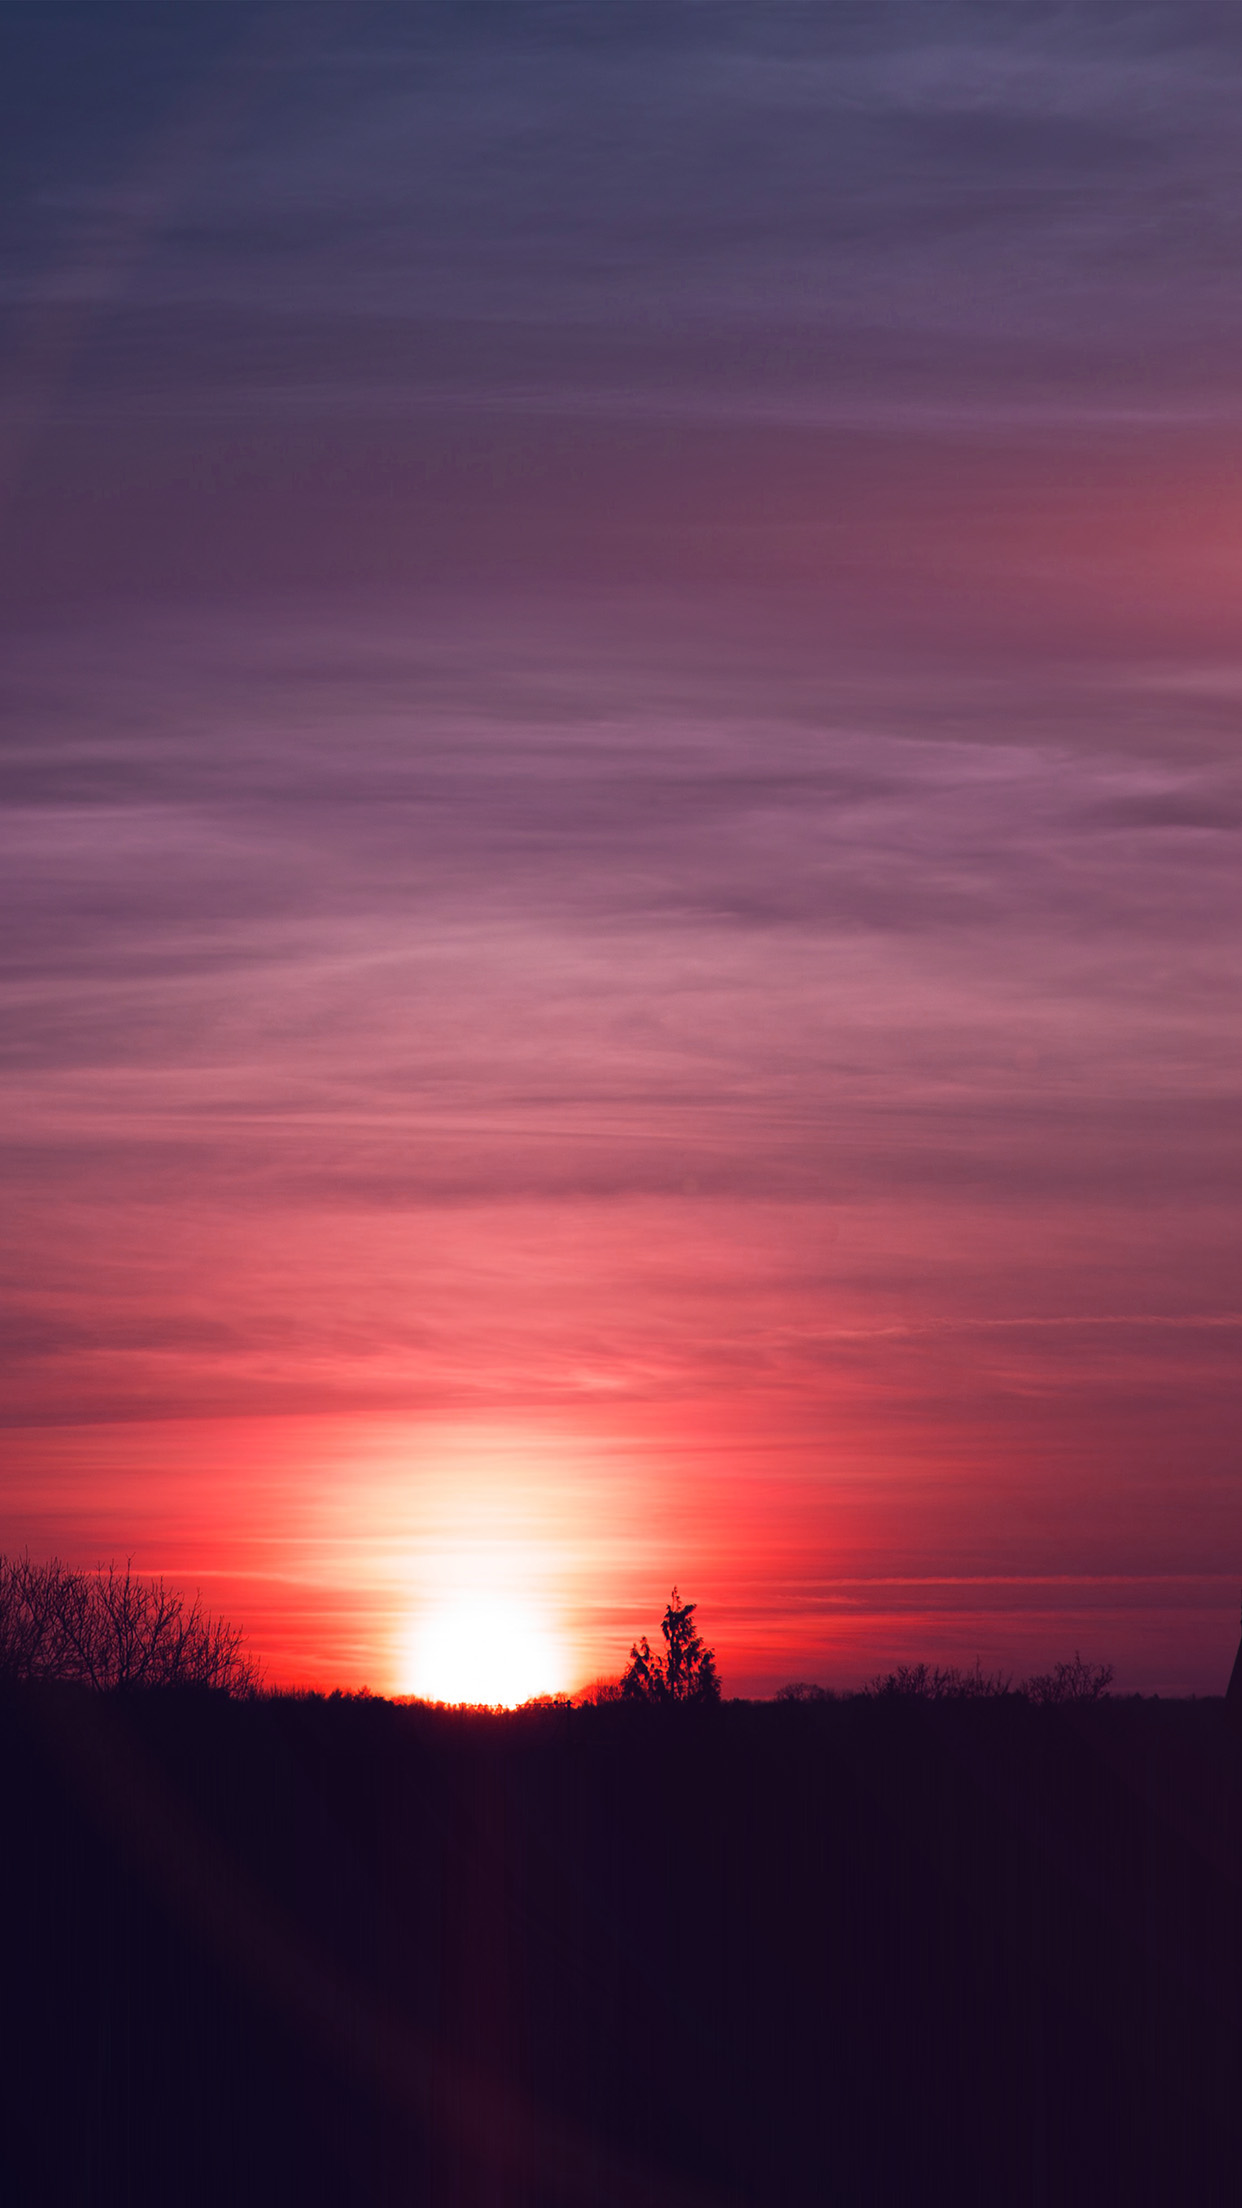 nd31-sky-sunset-night-summer-cloud-nature-red-flare-wallpaper